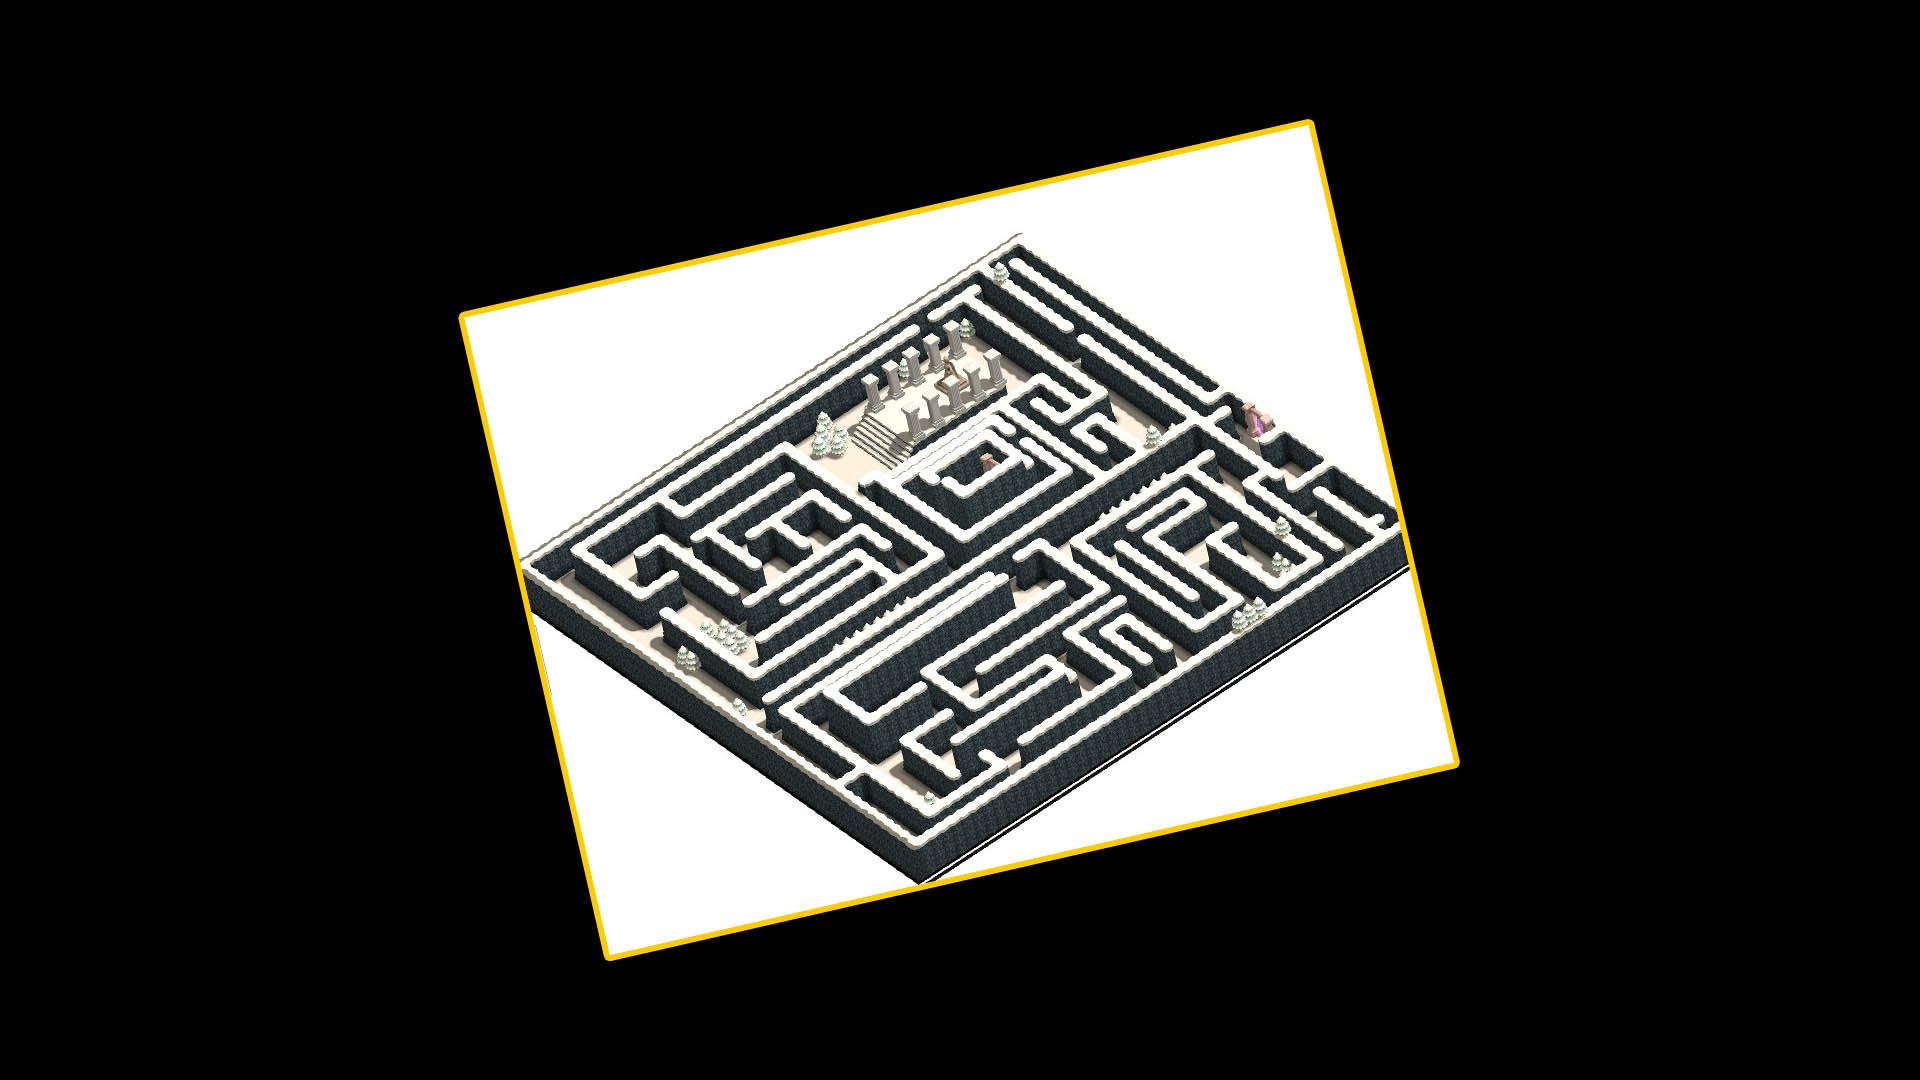 Steam Card Exchange Showcase Chicken Labyrinth Puzzles 5 Circuit 1 Of 5artwork Snow